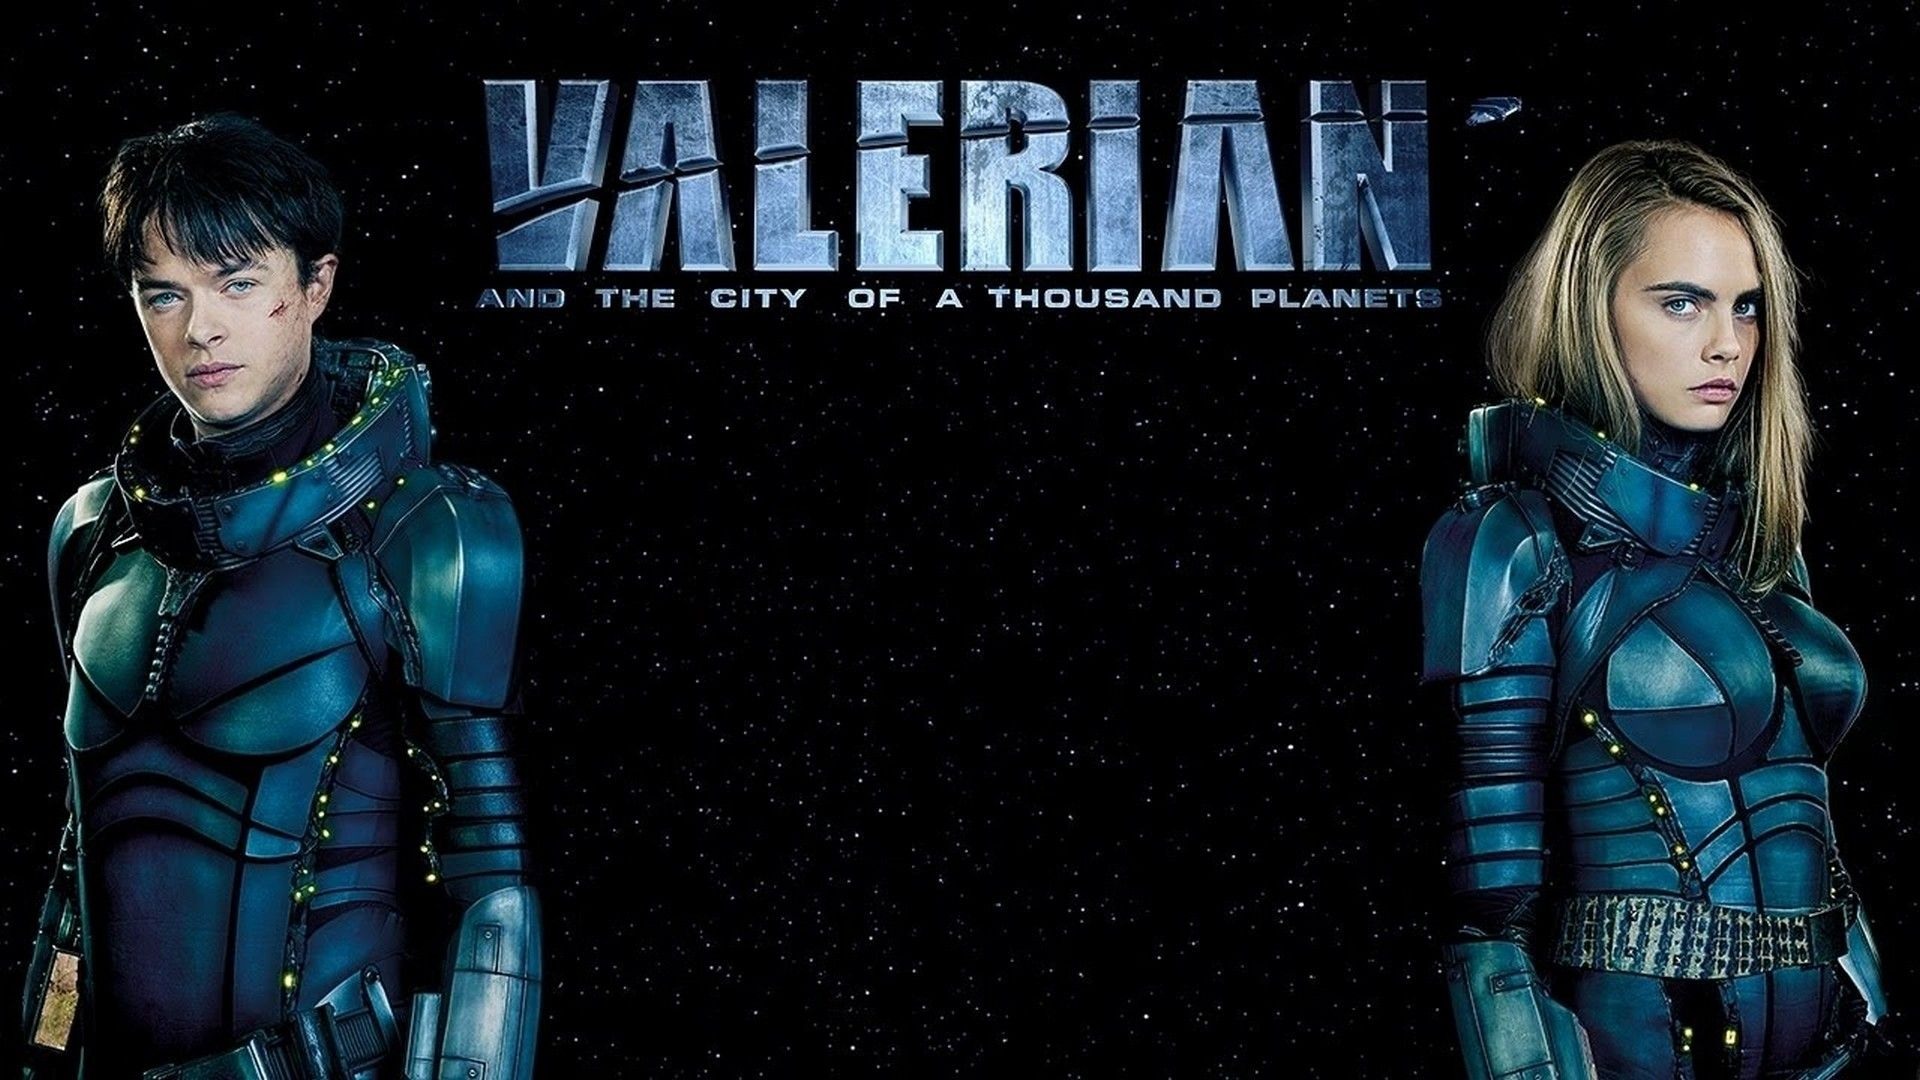 Valerian and the City of a Thousand Planets wallpaper Valerian 1920x1080